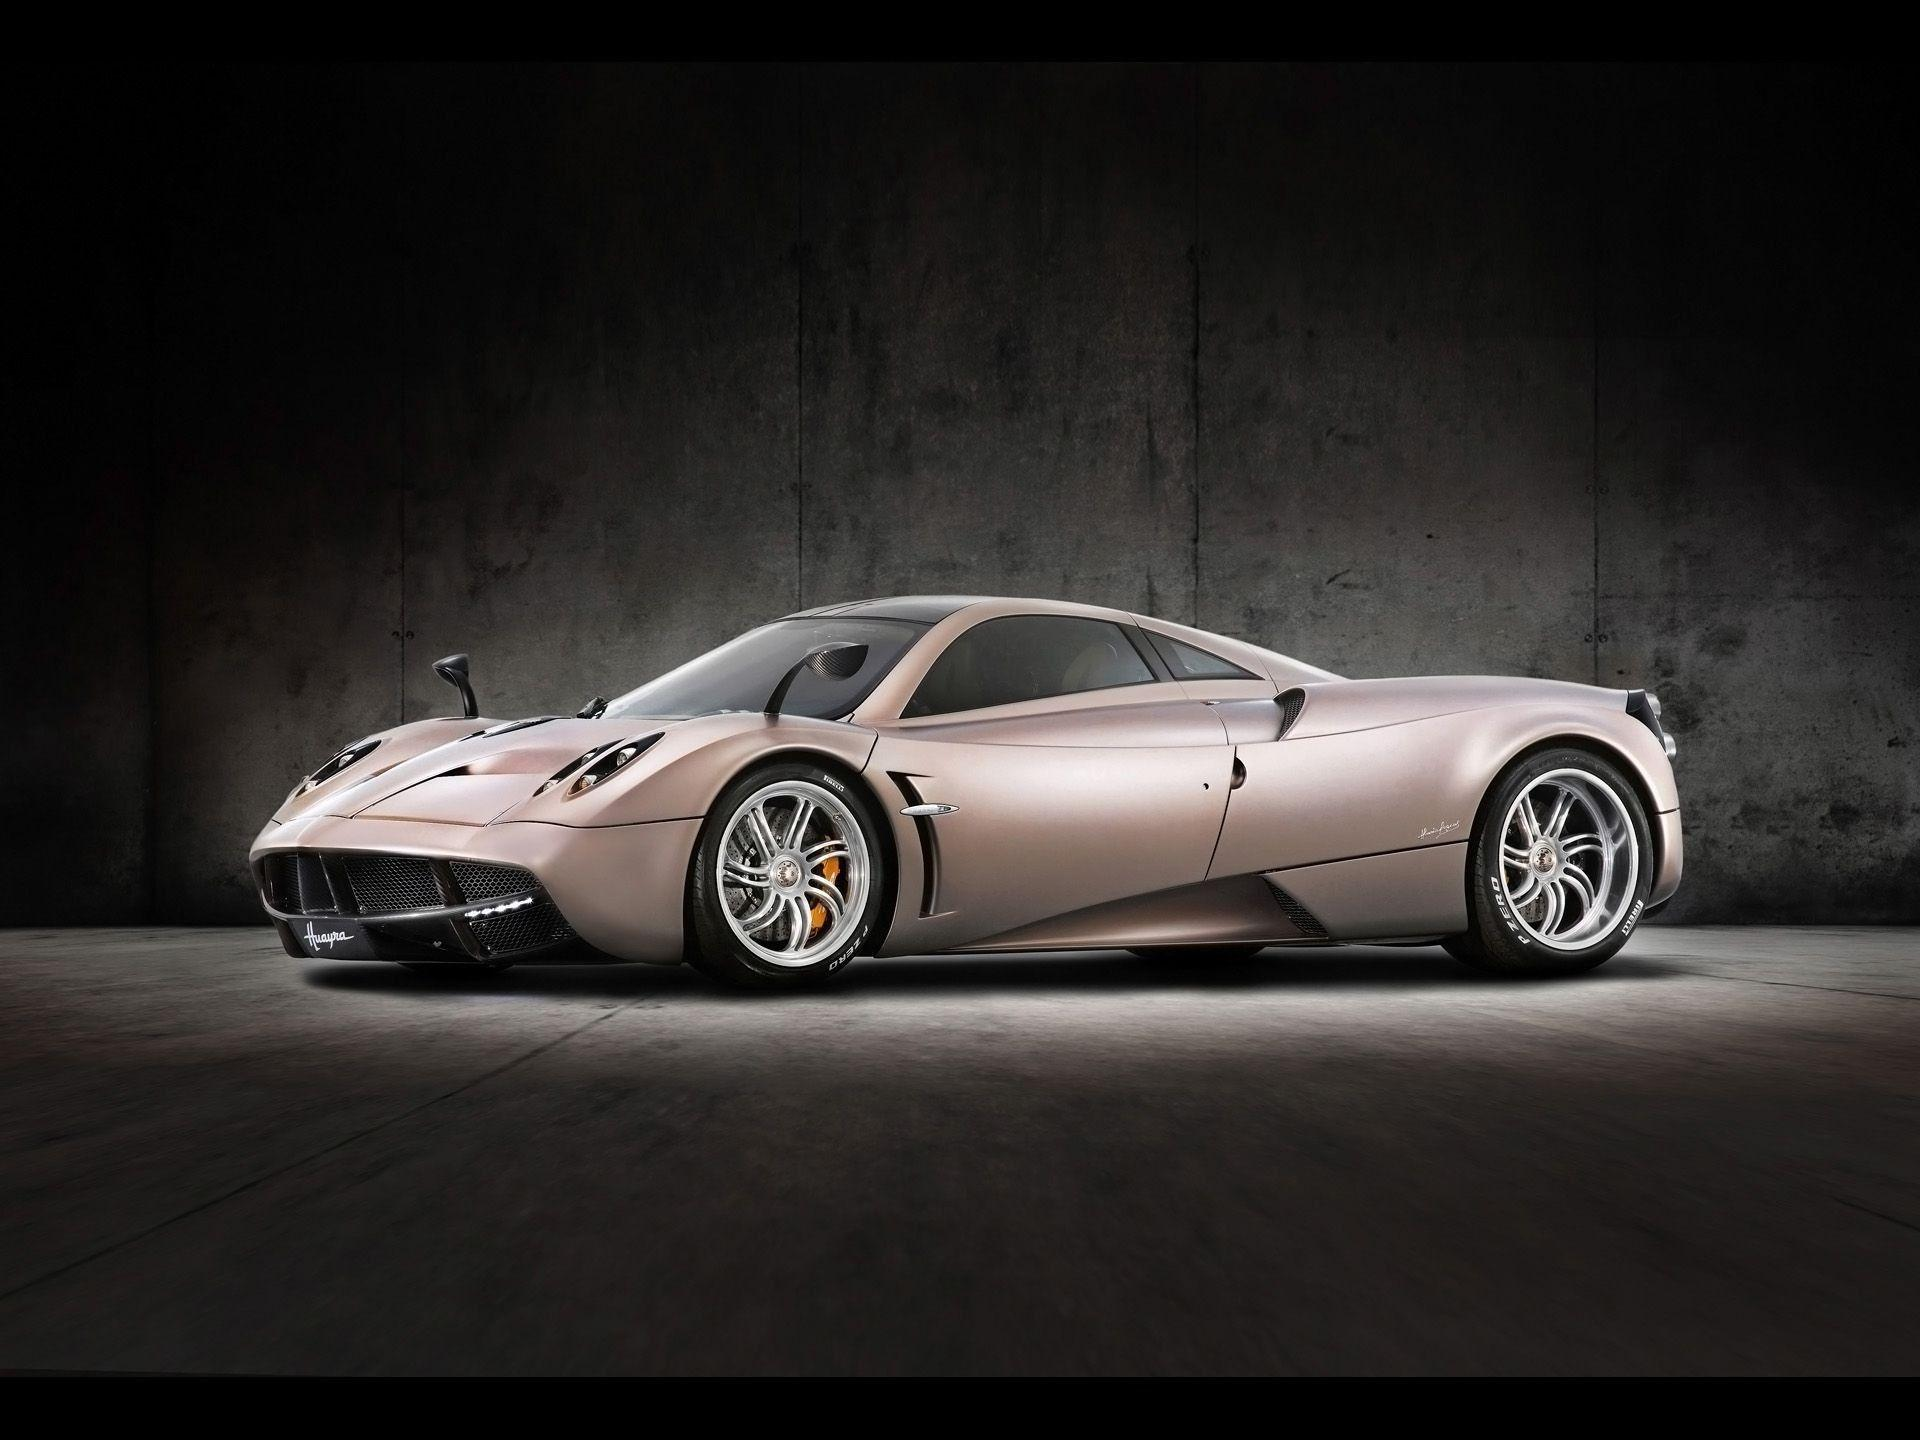 Pagani Wallpapers Unique Bhagat Kamra On Pagani Pinterest